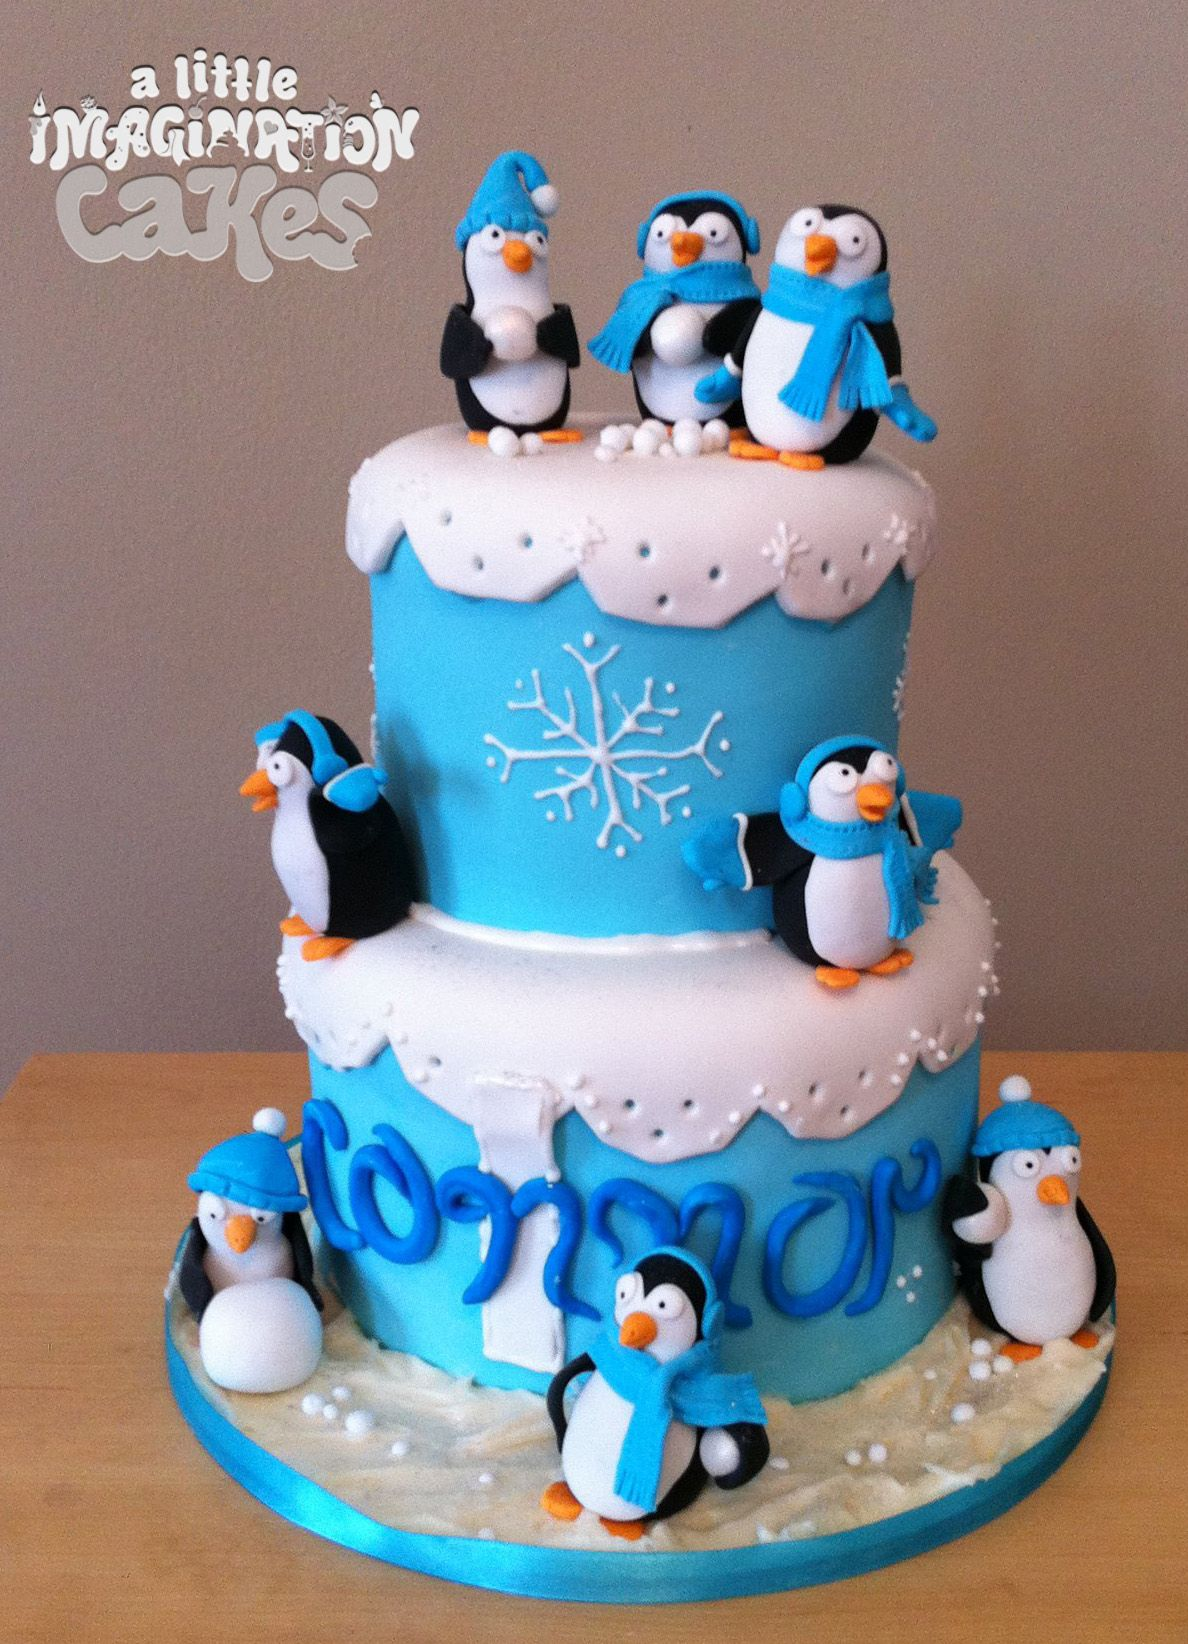 Penguin 1st Birthday Cake By A Little Imagination Cakes Kids